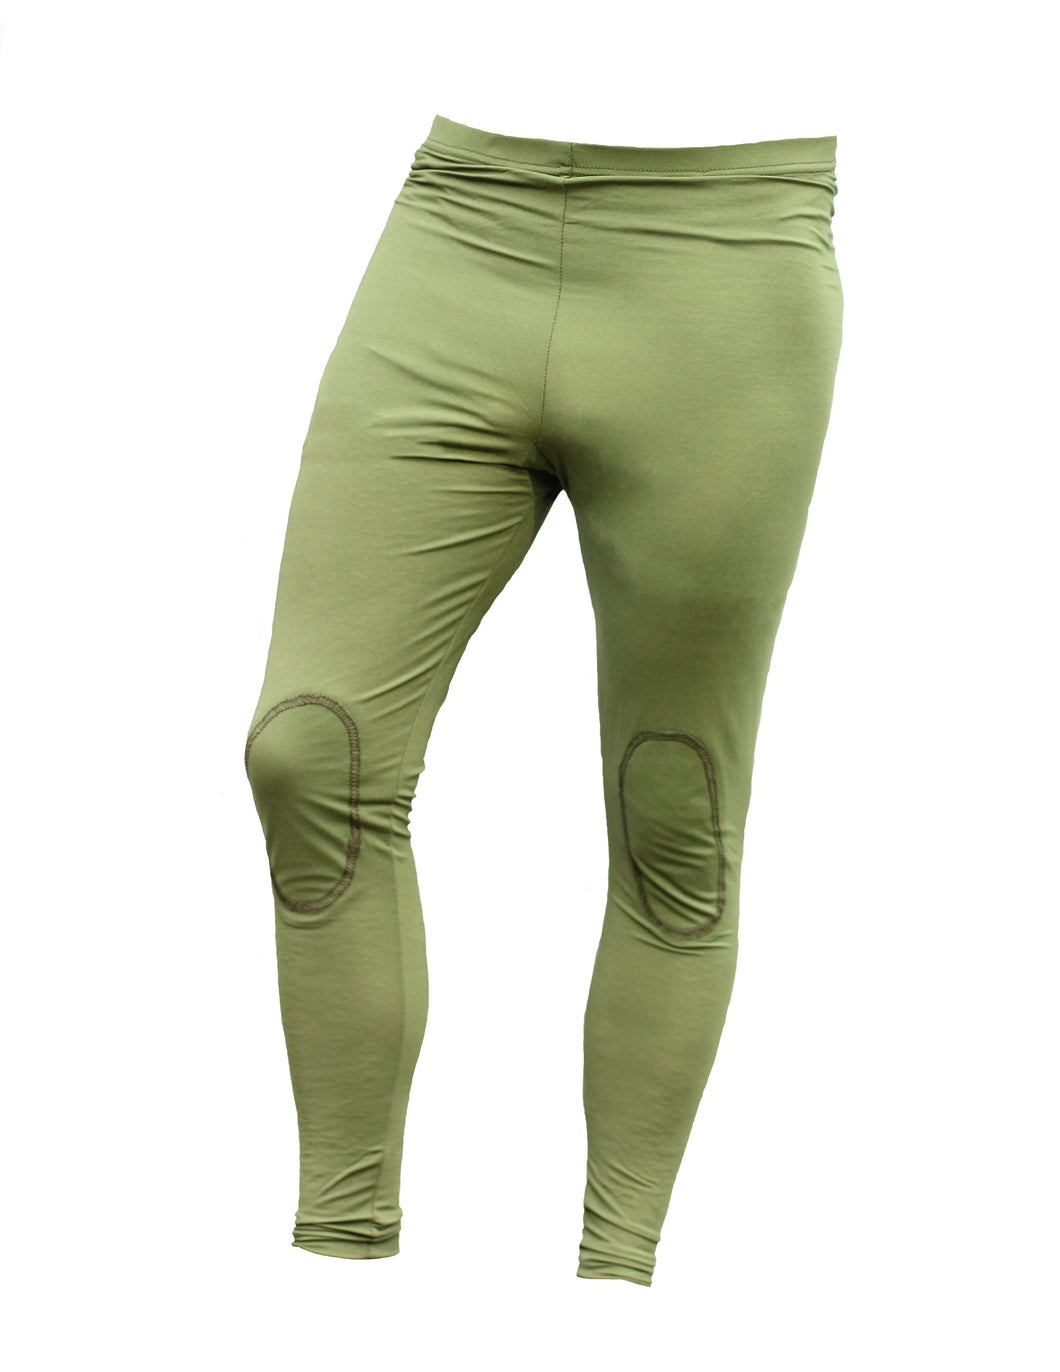 RYNOSKIN Total Pants Green X-Large